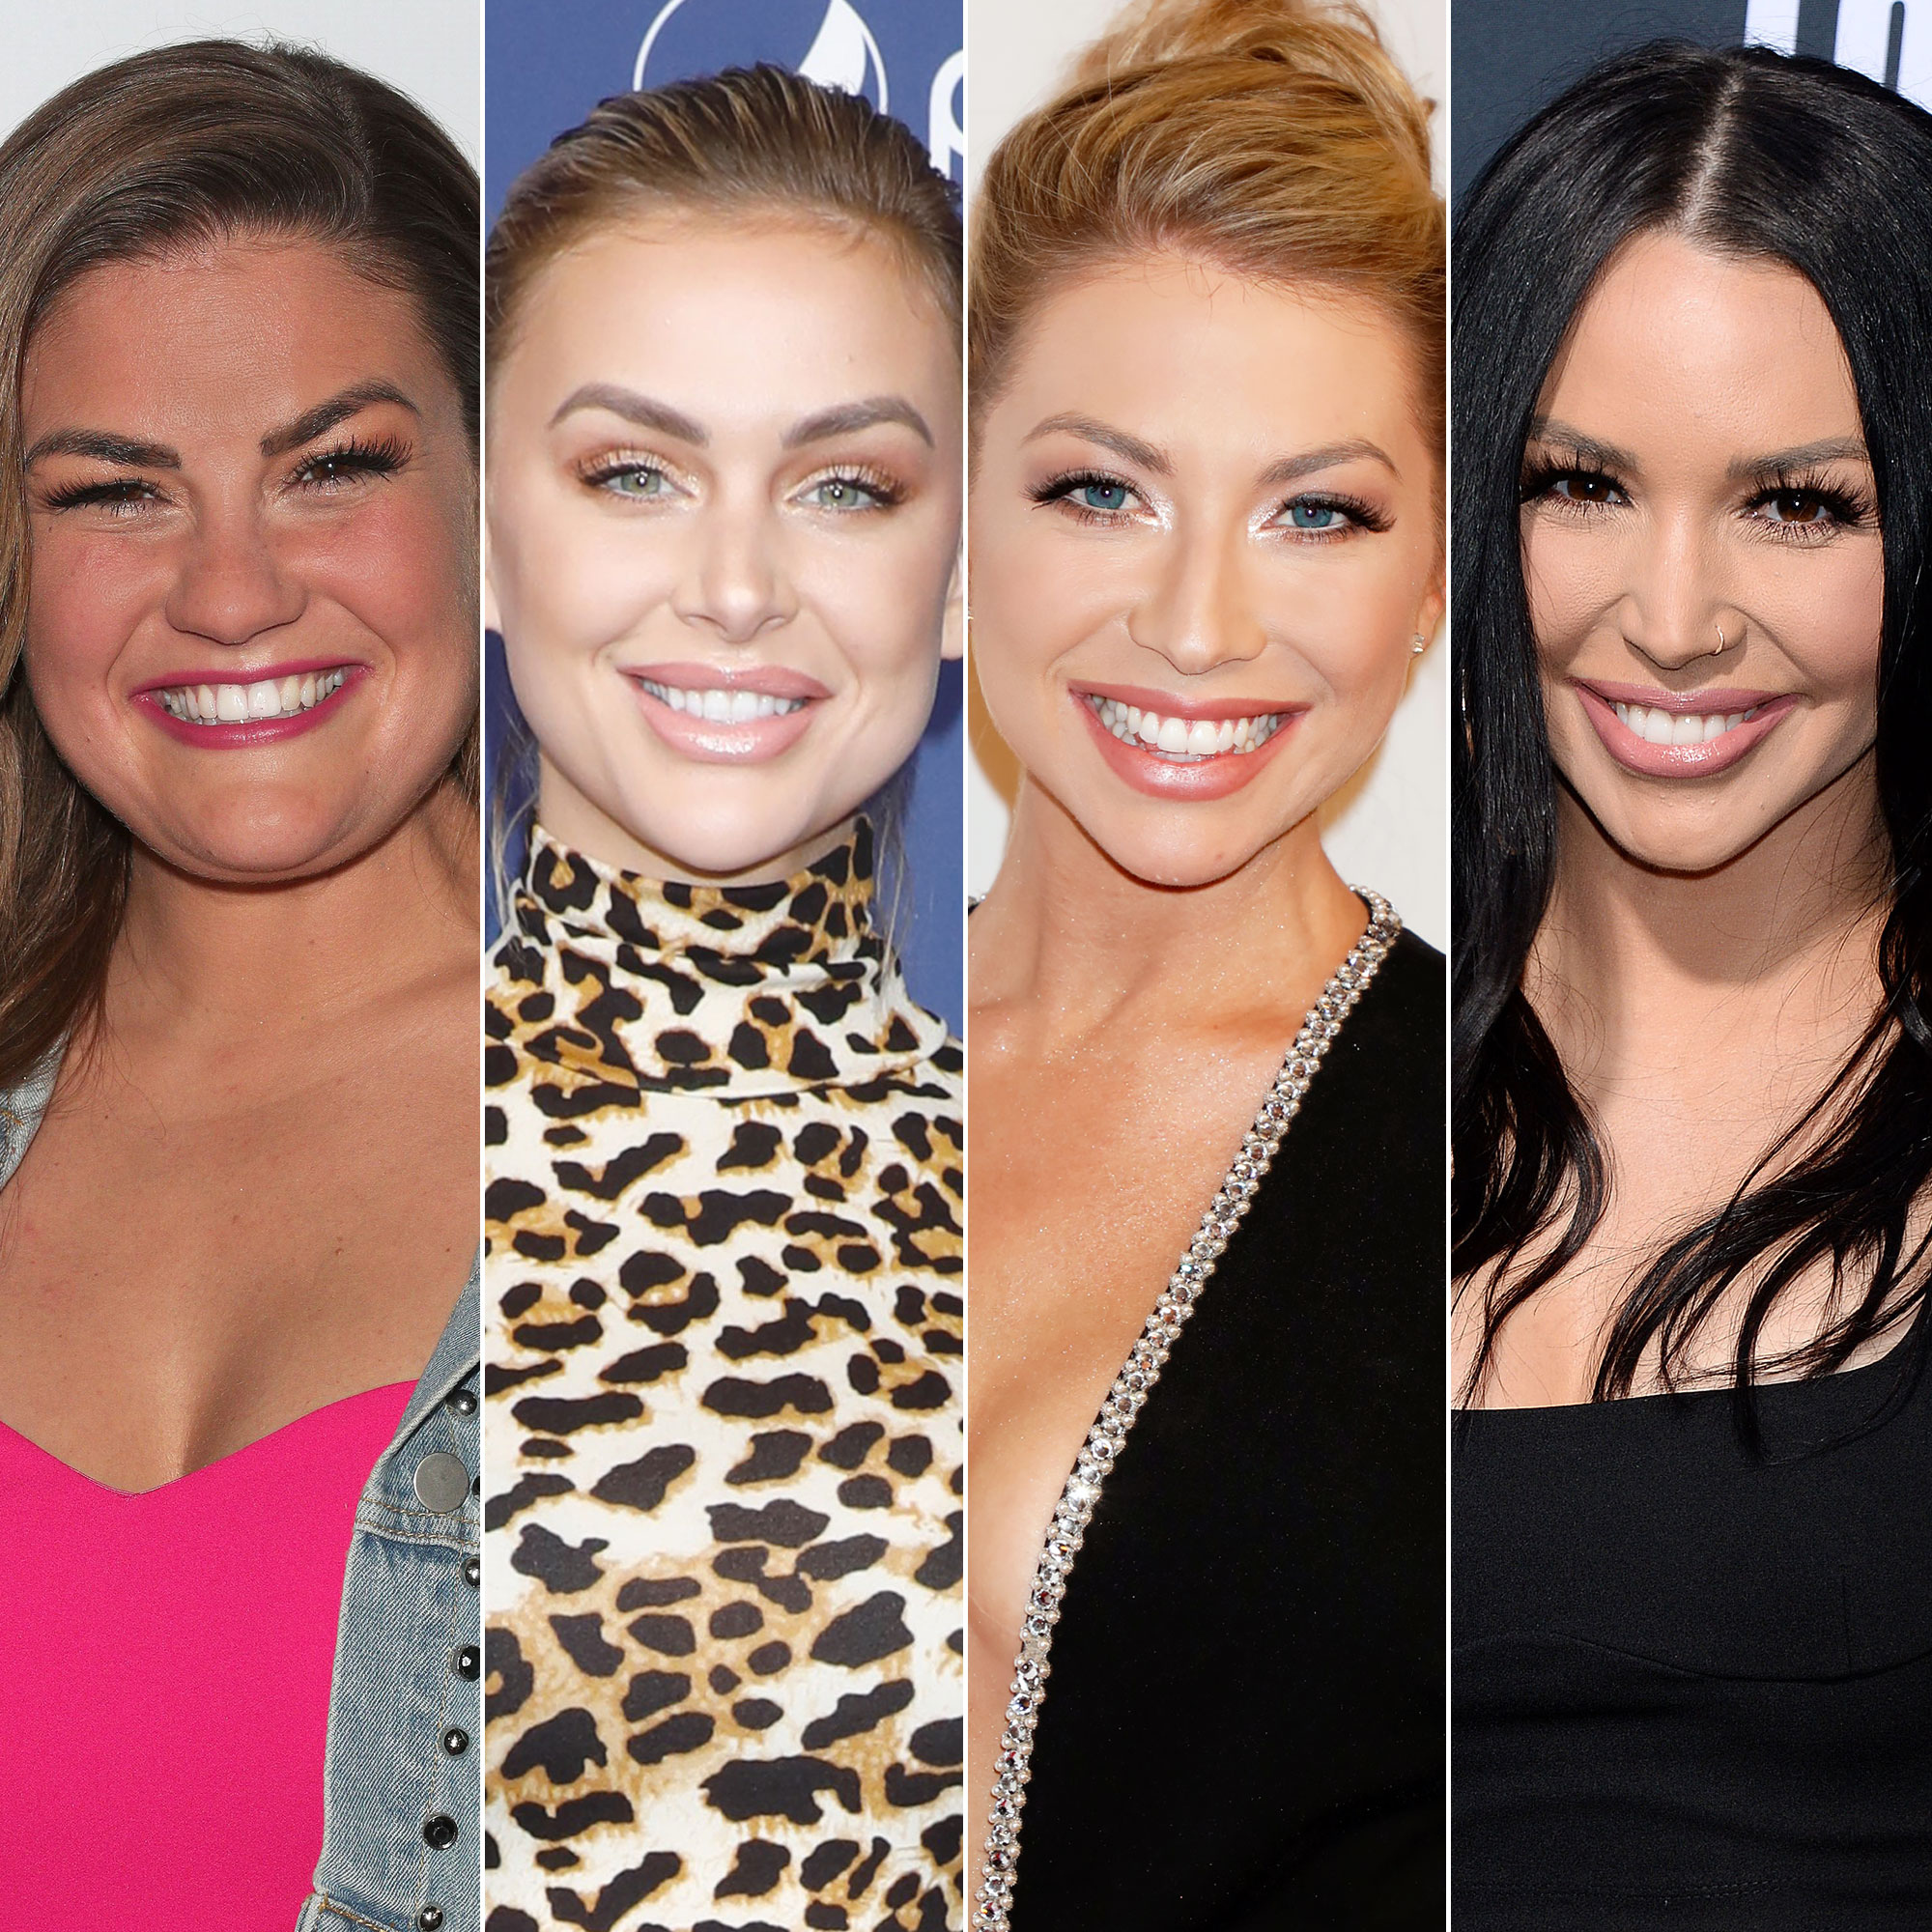 No More Feuds! Brittany, Lala, Stassi and Scheana Talk Daily About Mom Life